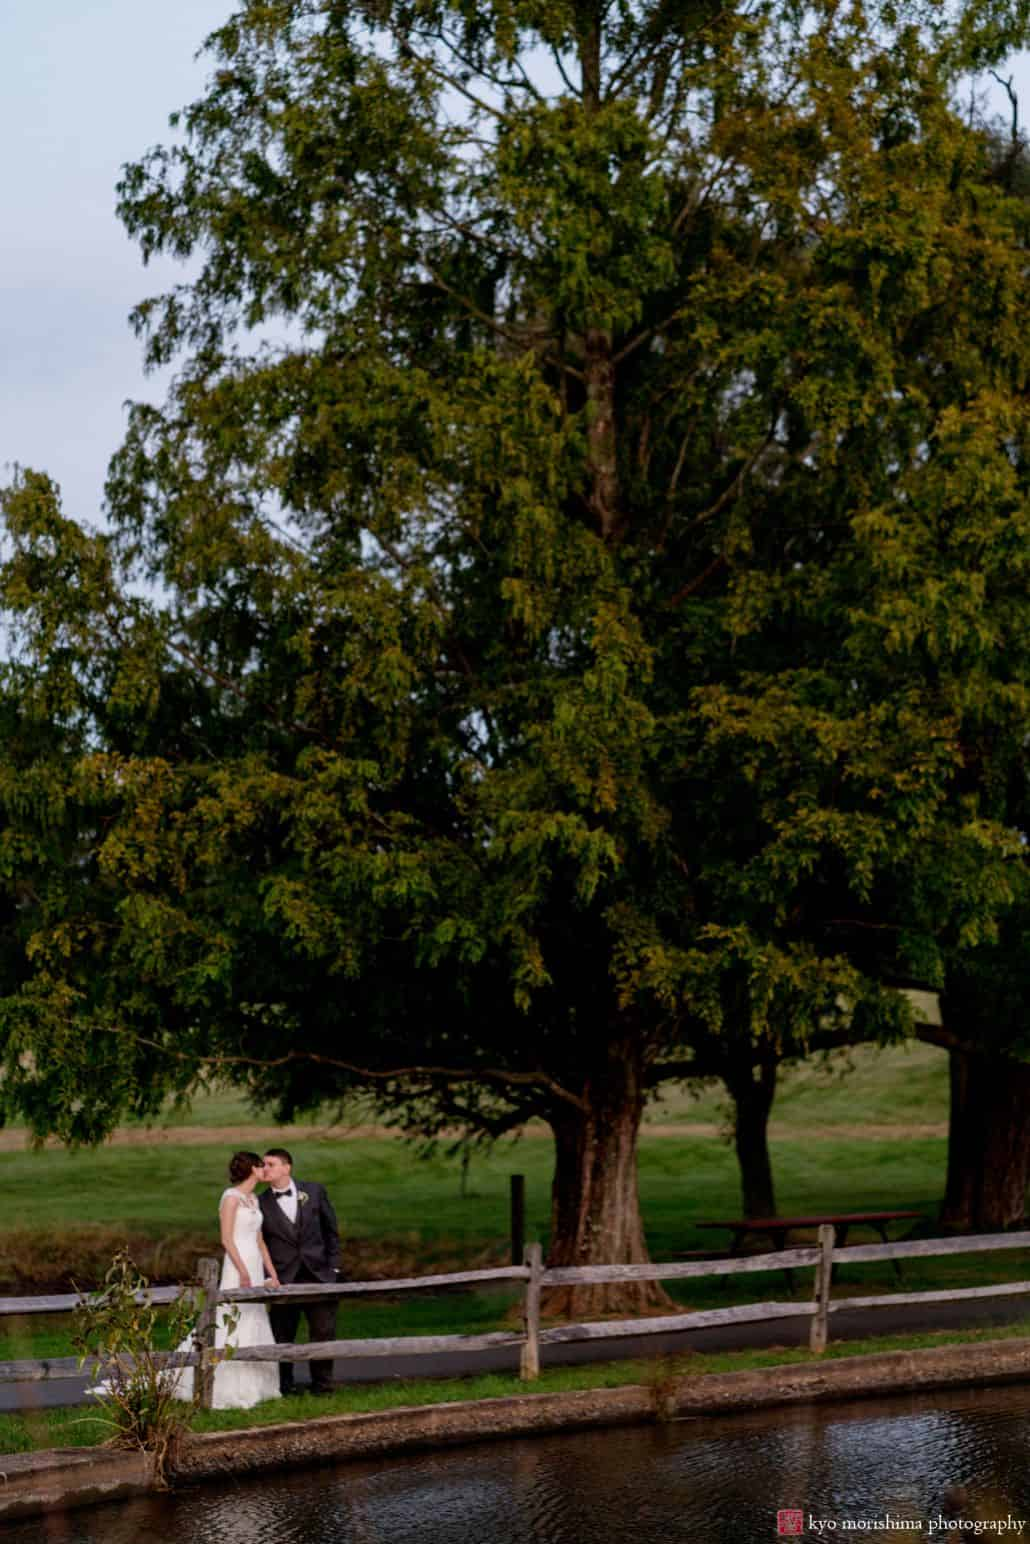 Wedding venues near Princeton University: the Chauncey Conference Center includes this lovely lake and wooded path perfect for romantic wedding portraits